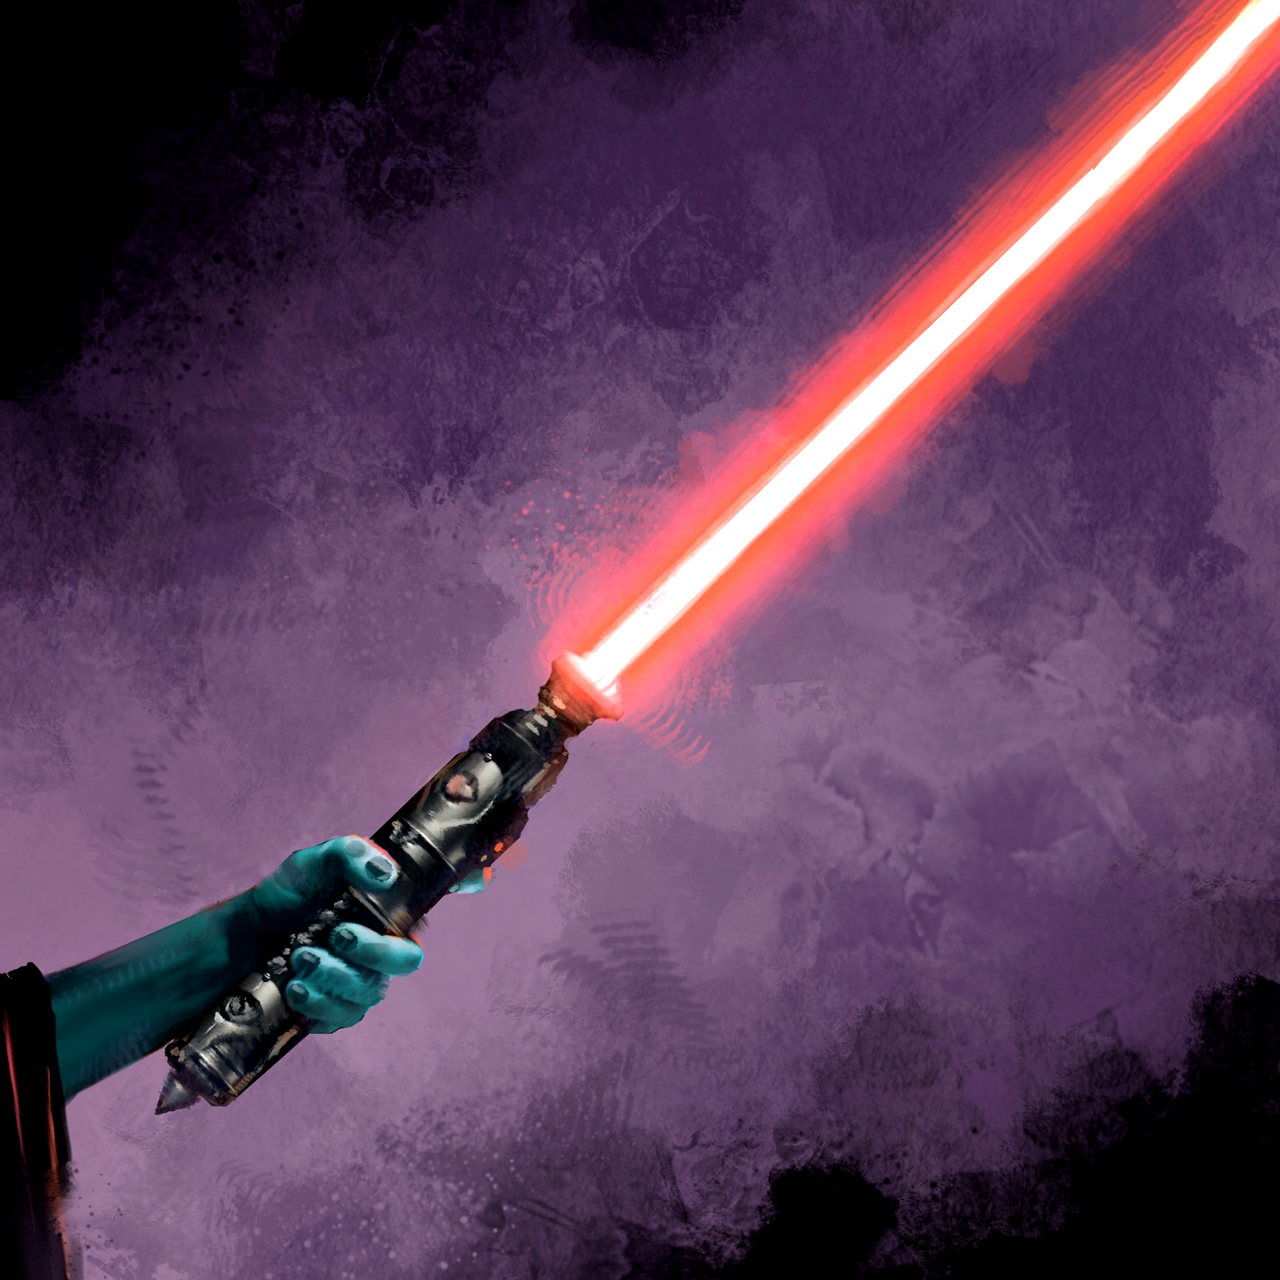 Sith Lightsaber Wookieepedia The Star Wars Wiki